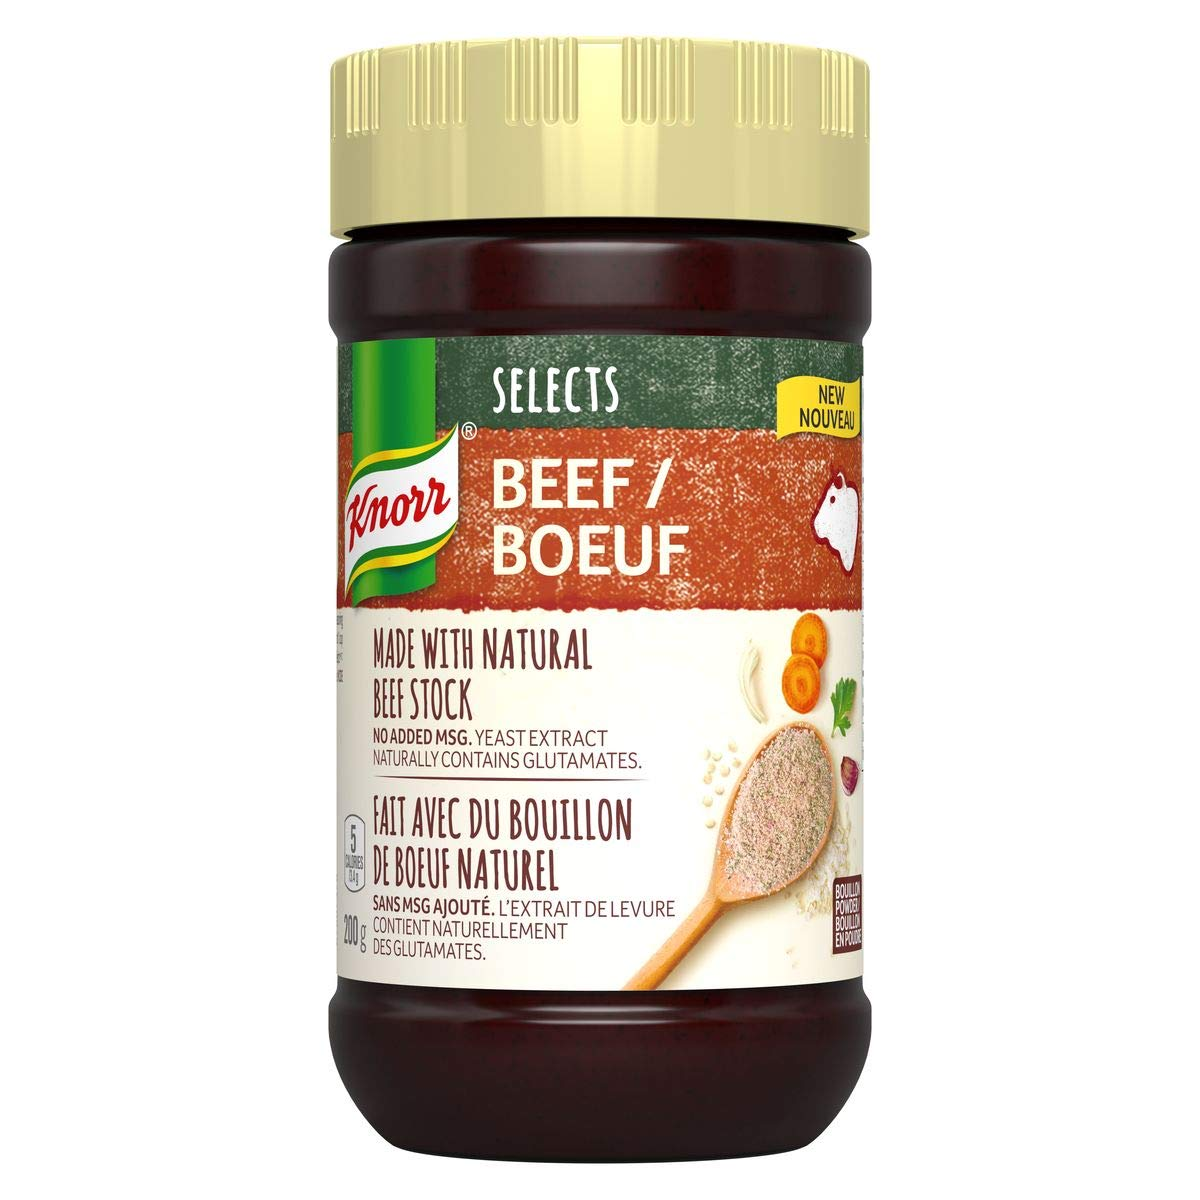 Knorr Selects Beef Bouillon Powder Popular product 7.1oz 200g from Imported San Diego Mall Ca